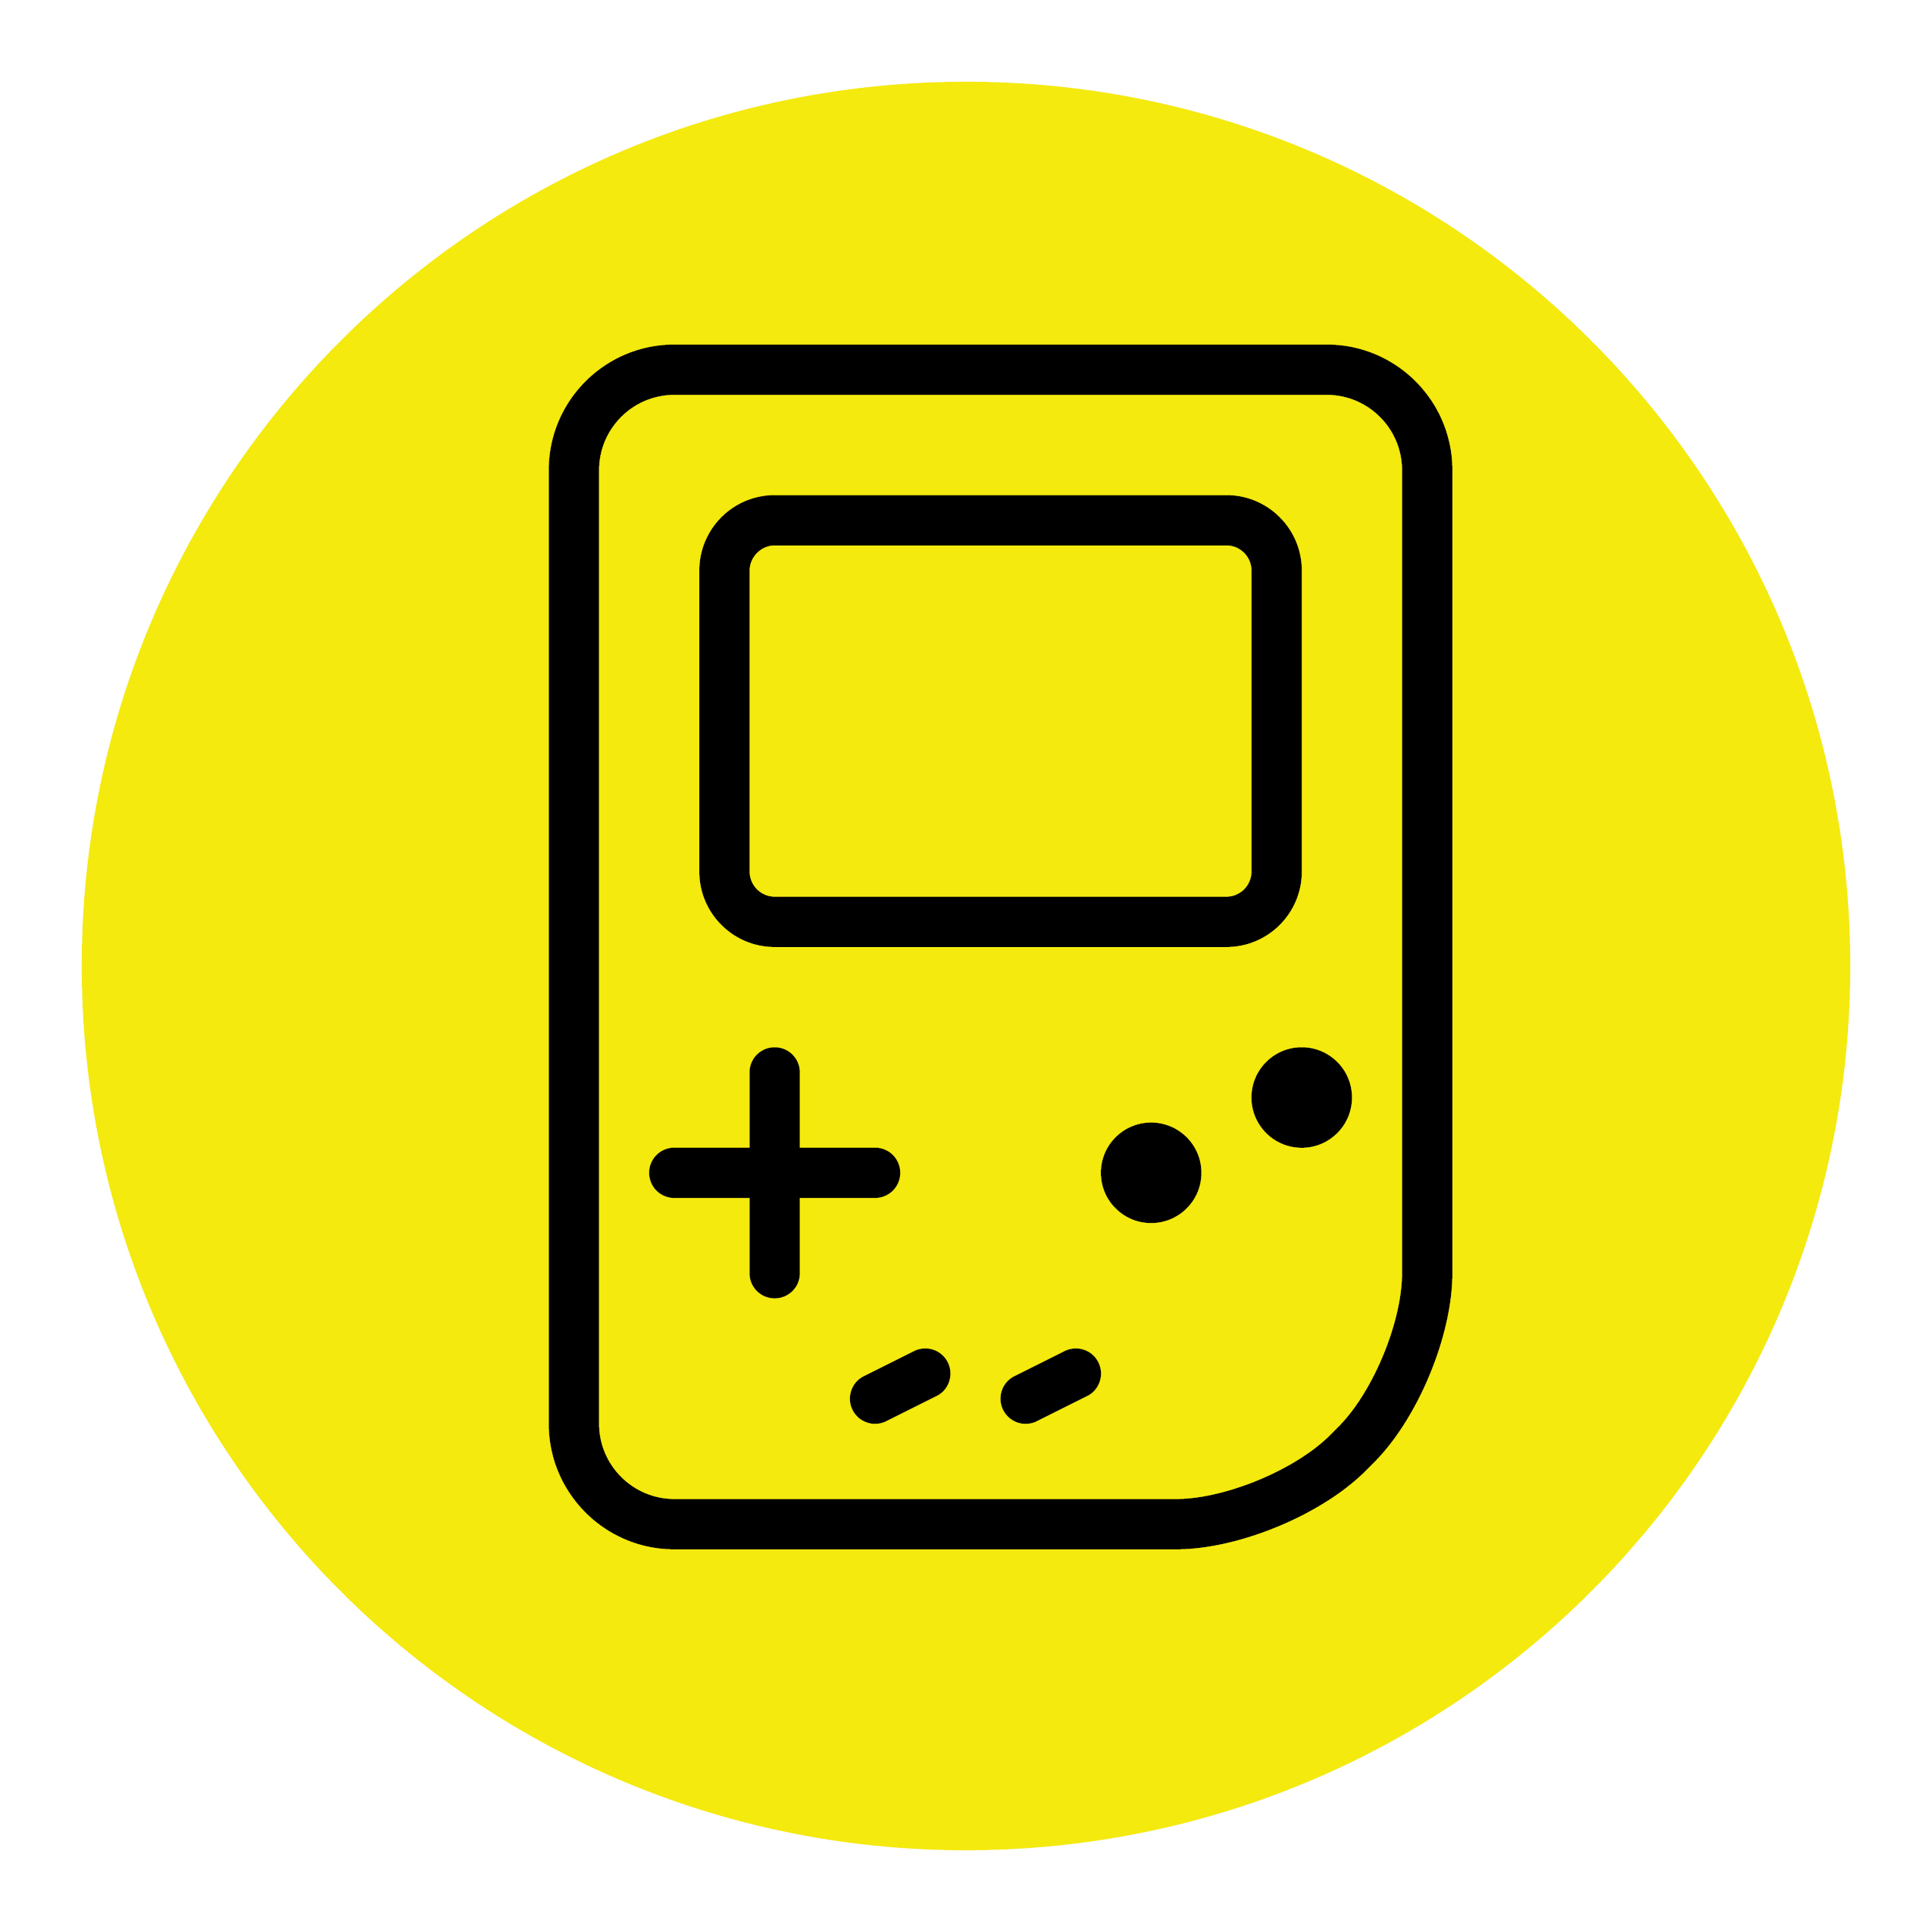 A yellow circle contains the image of an original GameBoy